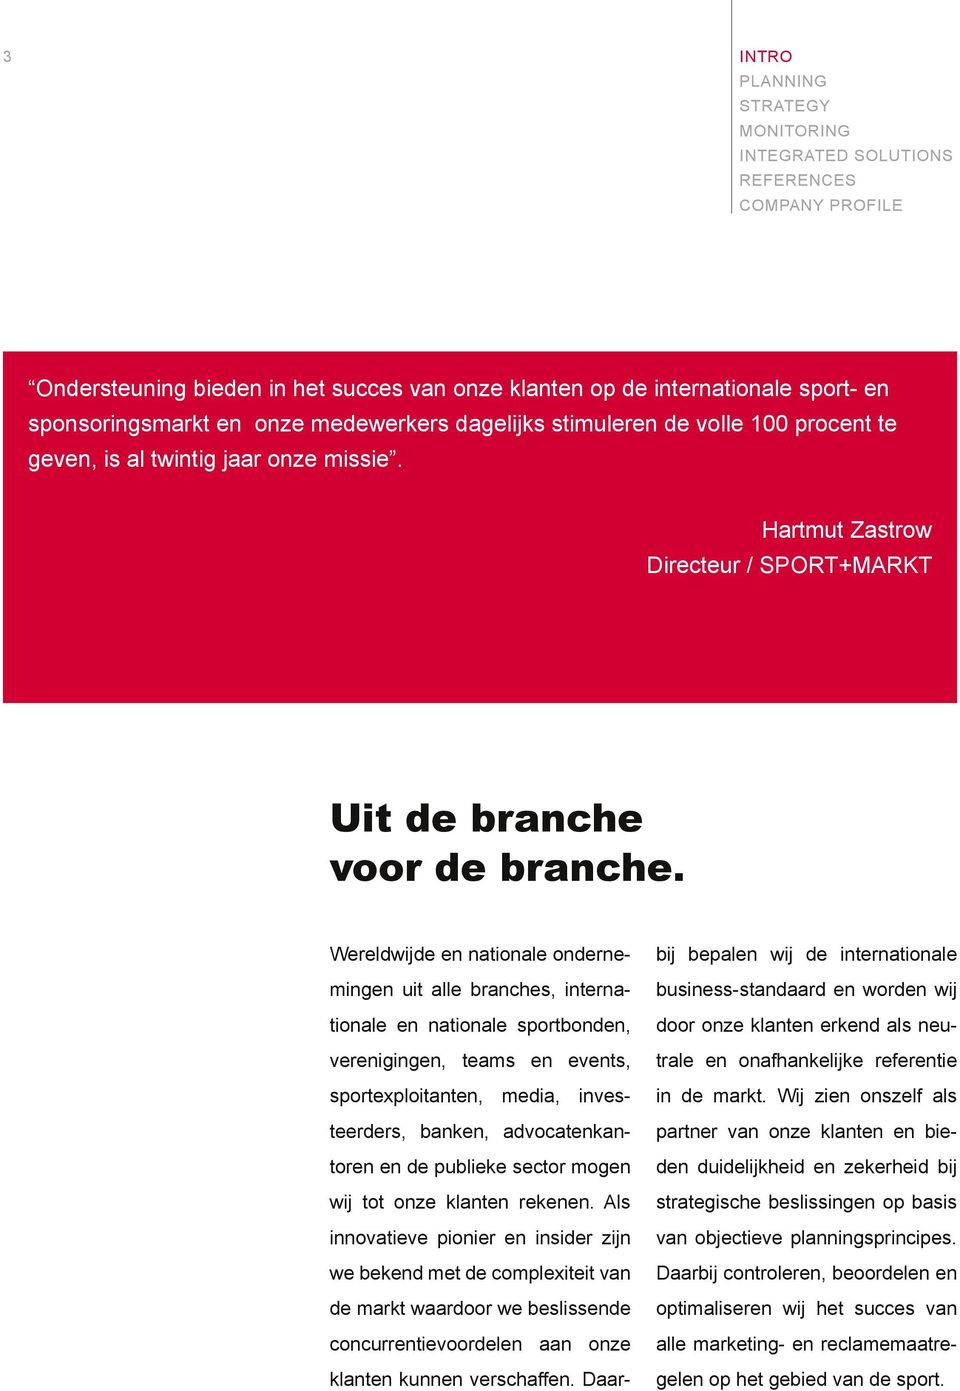 Wereldwijde en nationale ondernemingen uit alle branches, internationale en nationale sportbonden, verenigingen, teams en events, sportexploitanten, media, investeerders, banken, advocatenkantoren en